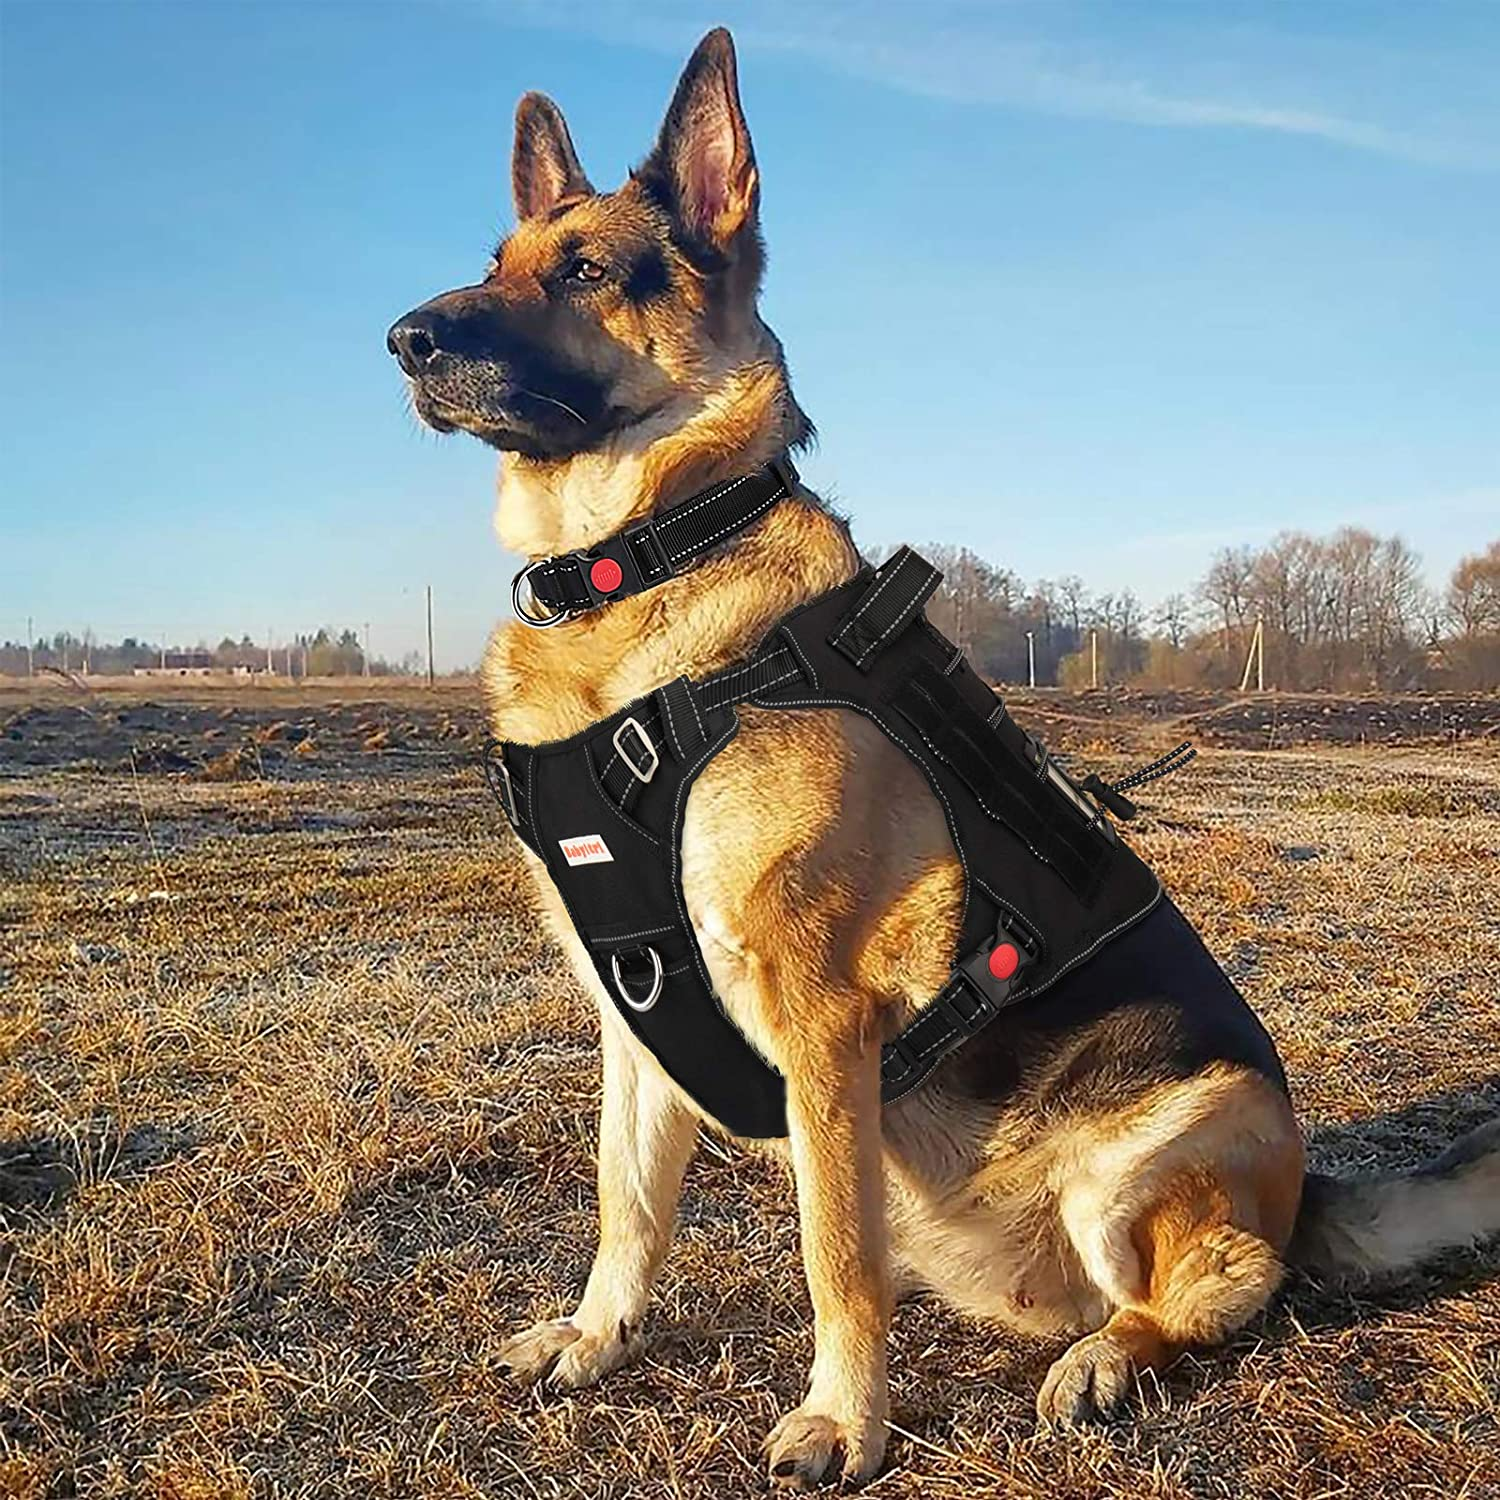 BABYLTRL Tactical Dog Harness for Large Medium Small Dogs, No Pull Dog Harness, Working Dog MOLLE Vest with Handle, Reflective K9 Military Service Dog Vest Harness for Training Hunting Walking